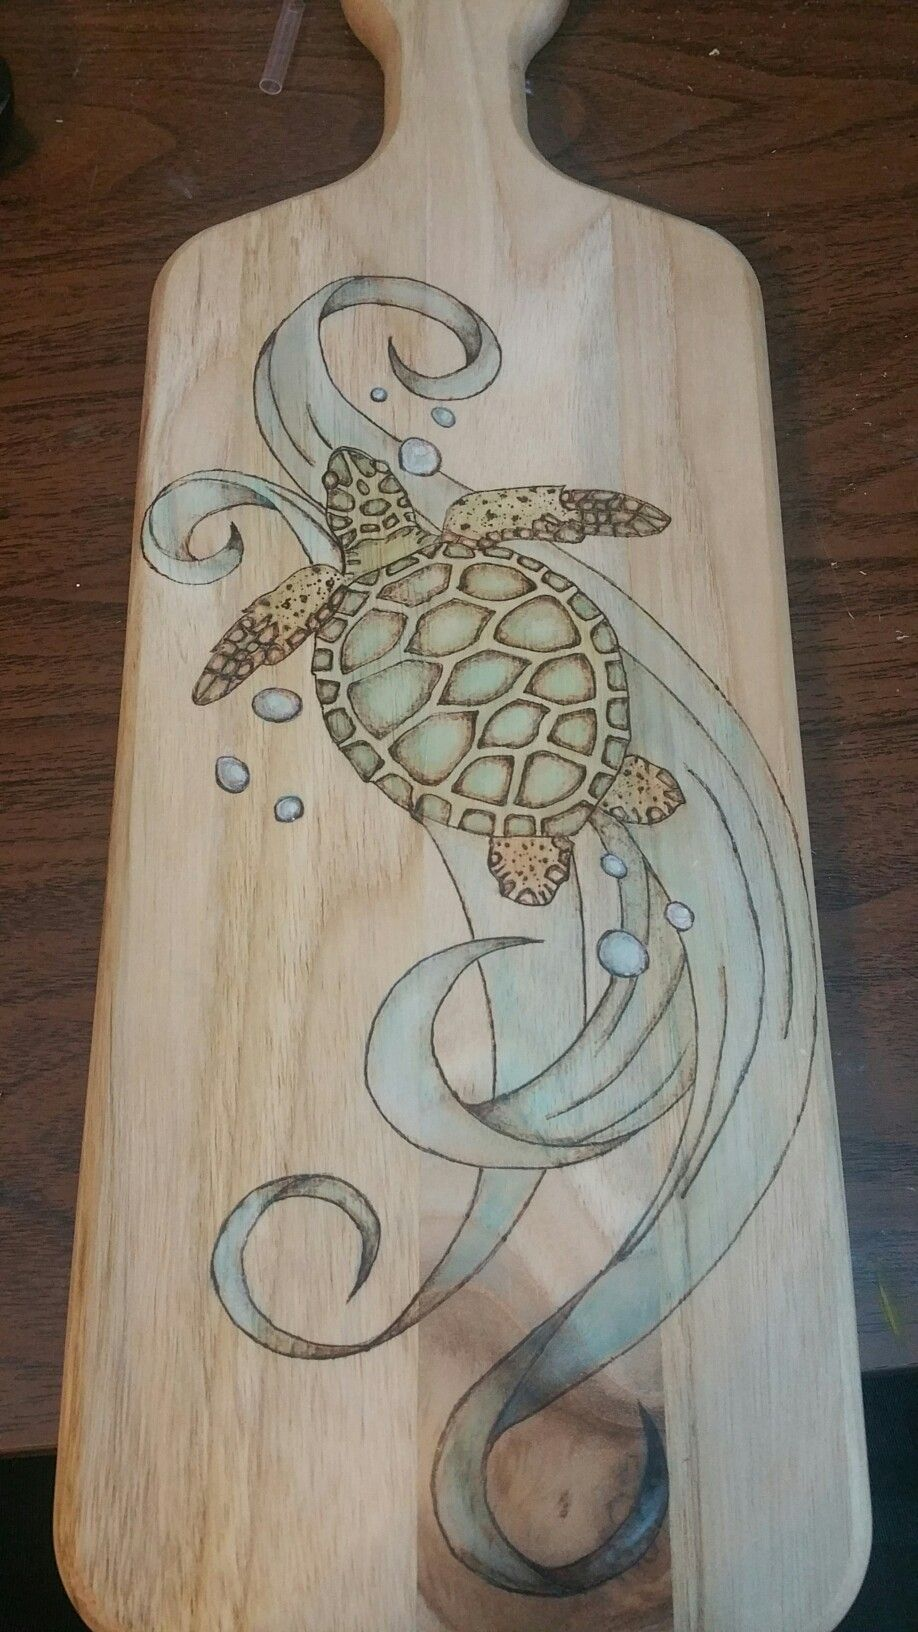 Wood Burned Sea Turtle Cutting Board Crafts To Sell